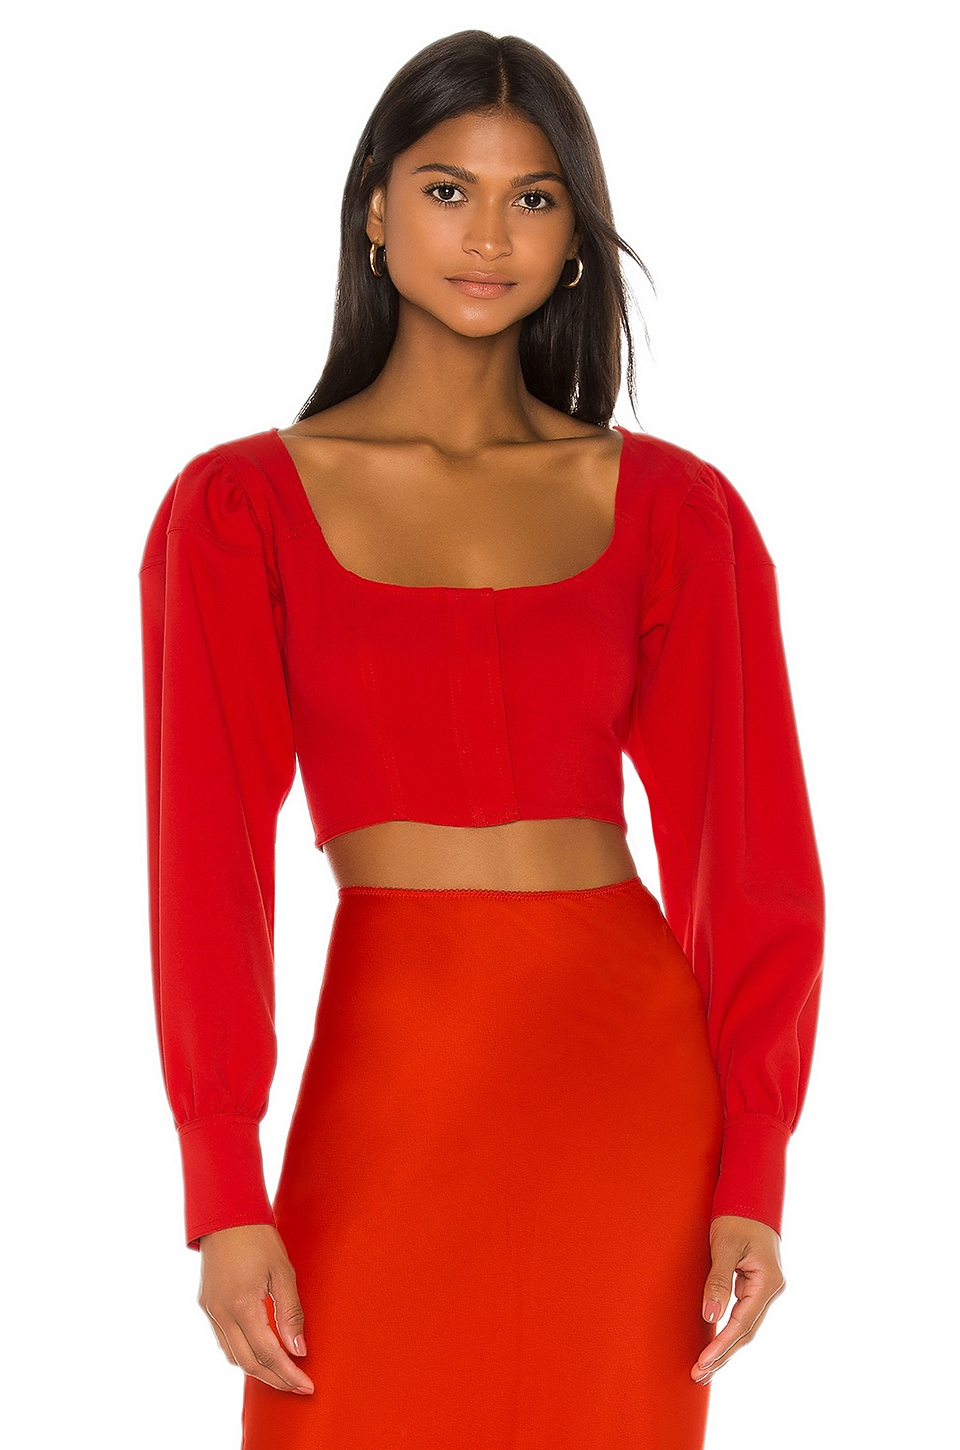 L'Academie The Roux Crop Top in Scarlet Red